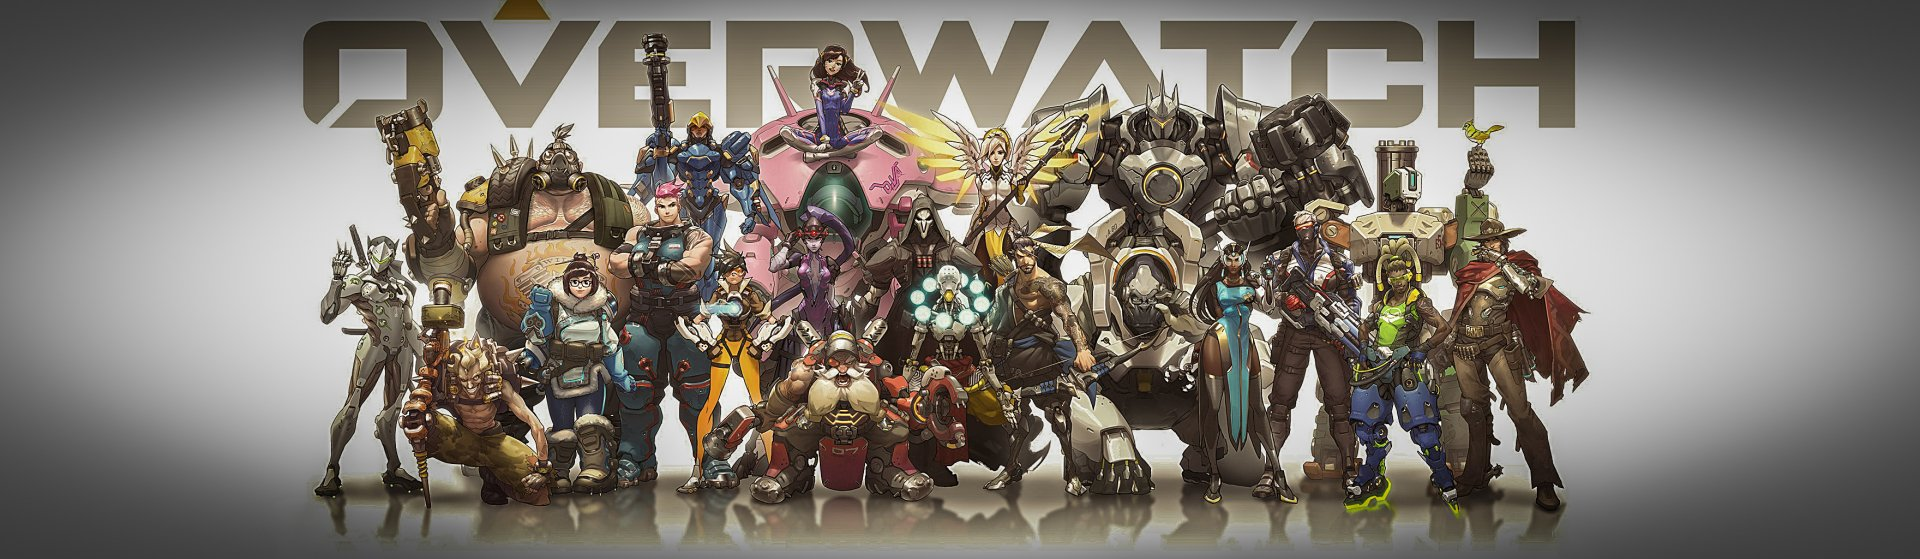 Video Game - Overwatch  Tracer (Overwatch) Widowmaker (Overwatch) Winston (Overwatch) Zarya (Overwatch) Zenyatta (Overwatch) Torbjörn (Overwatch) Symmetra (Overwatch) Roadhog (Overwatch) Reinhardt (Overwatch) Reaper (Overwatch) D.Va (Overwatch) Junkrat (Overwatch) Mei (Overwatch) Mercy (Overwatch) Soldier: 76 (Overwatch) Pharah (Overwatch) McCree (Overwatch) Lúcio (Overwatch) Hanzo (Overwatch) Genji (Overwatch) Bastion (Overwatch) Wallpaper